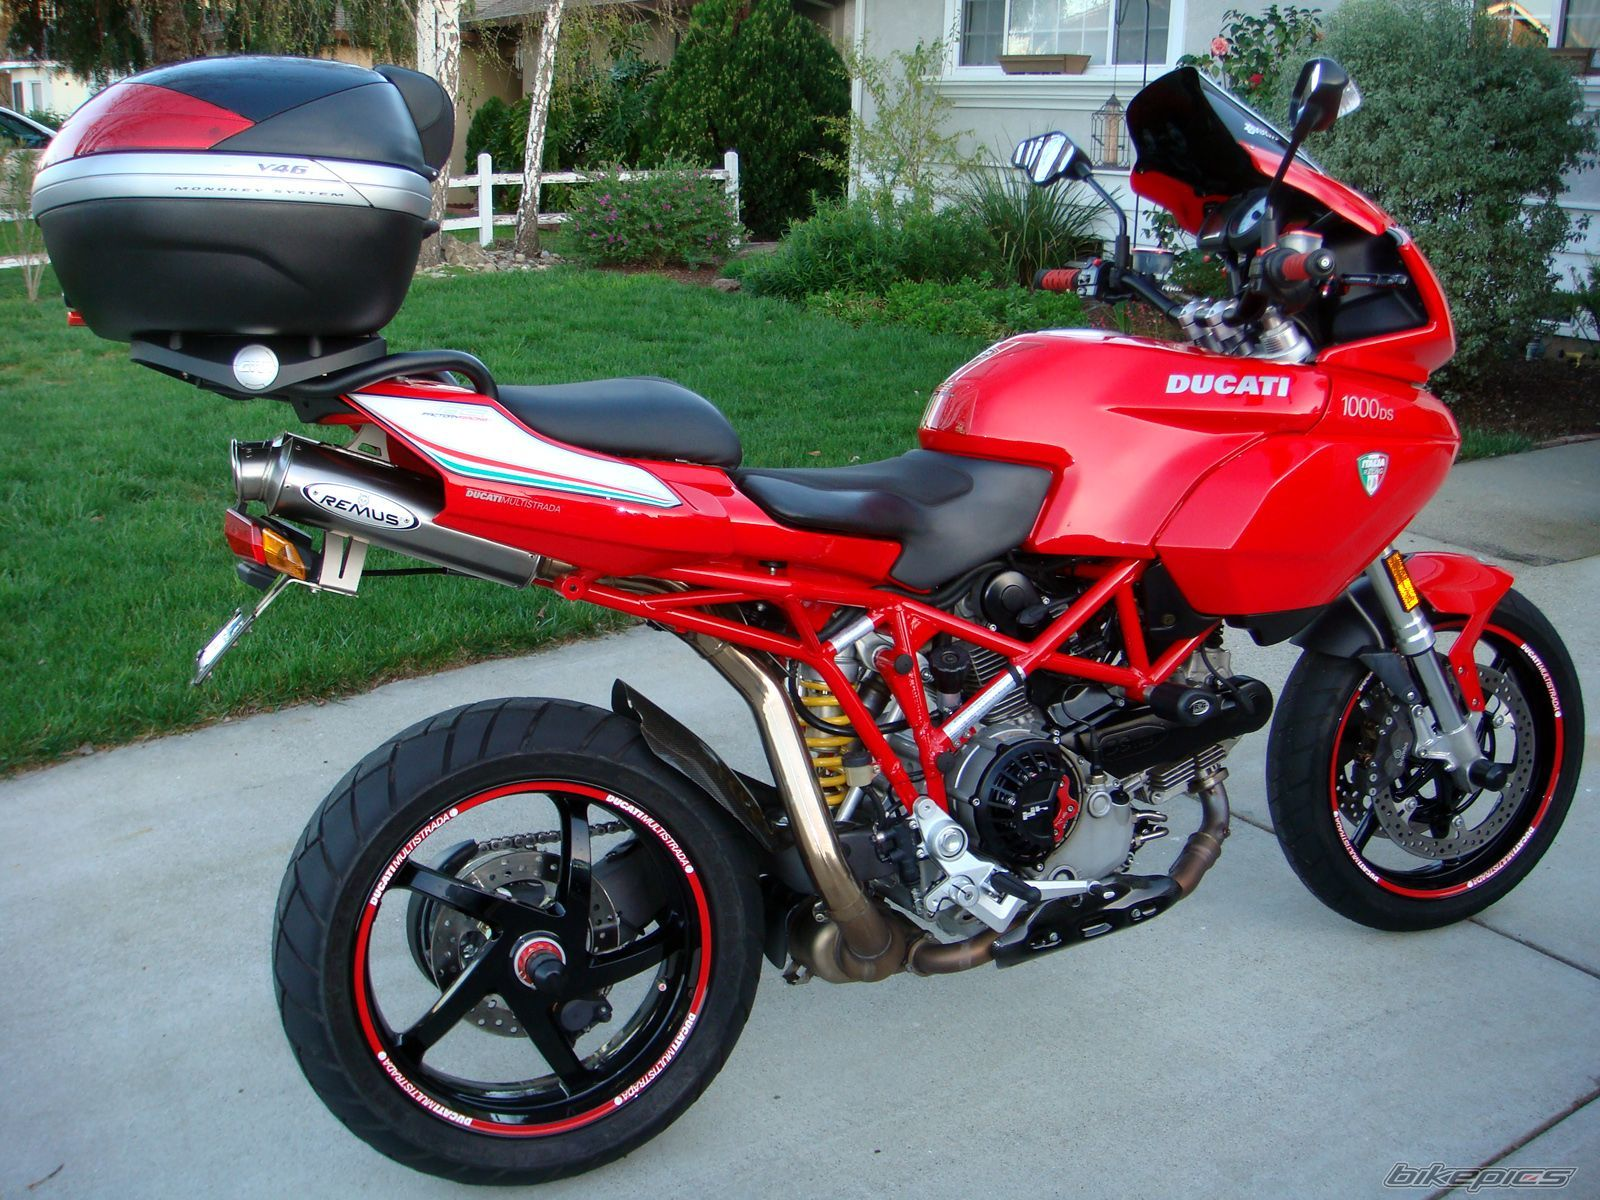 ducati multistrada 1000ds google keres s ducati multistrada 1000ds pinterest ducati. Black Bedroom Furniture Sets. Home Design Ideas